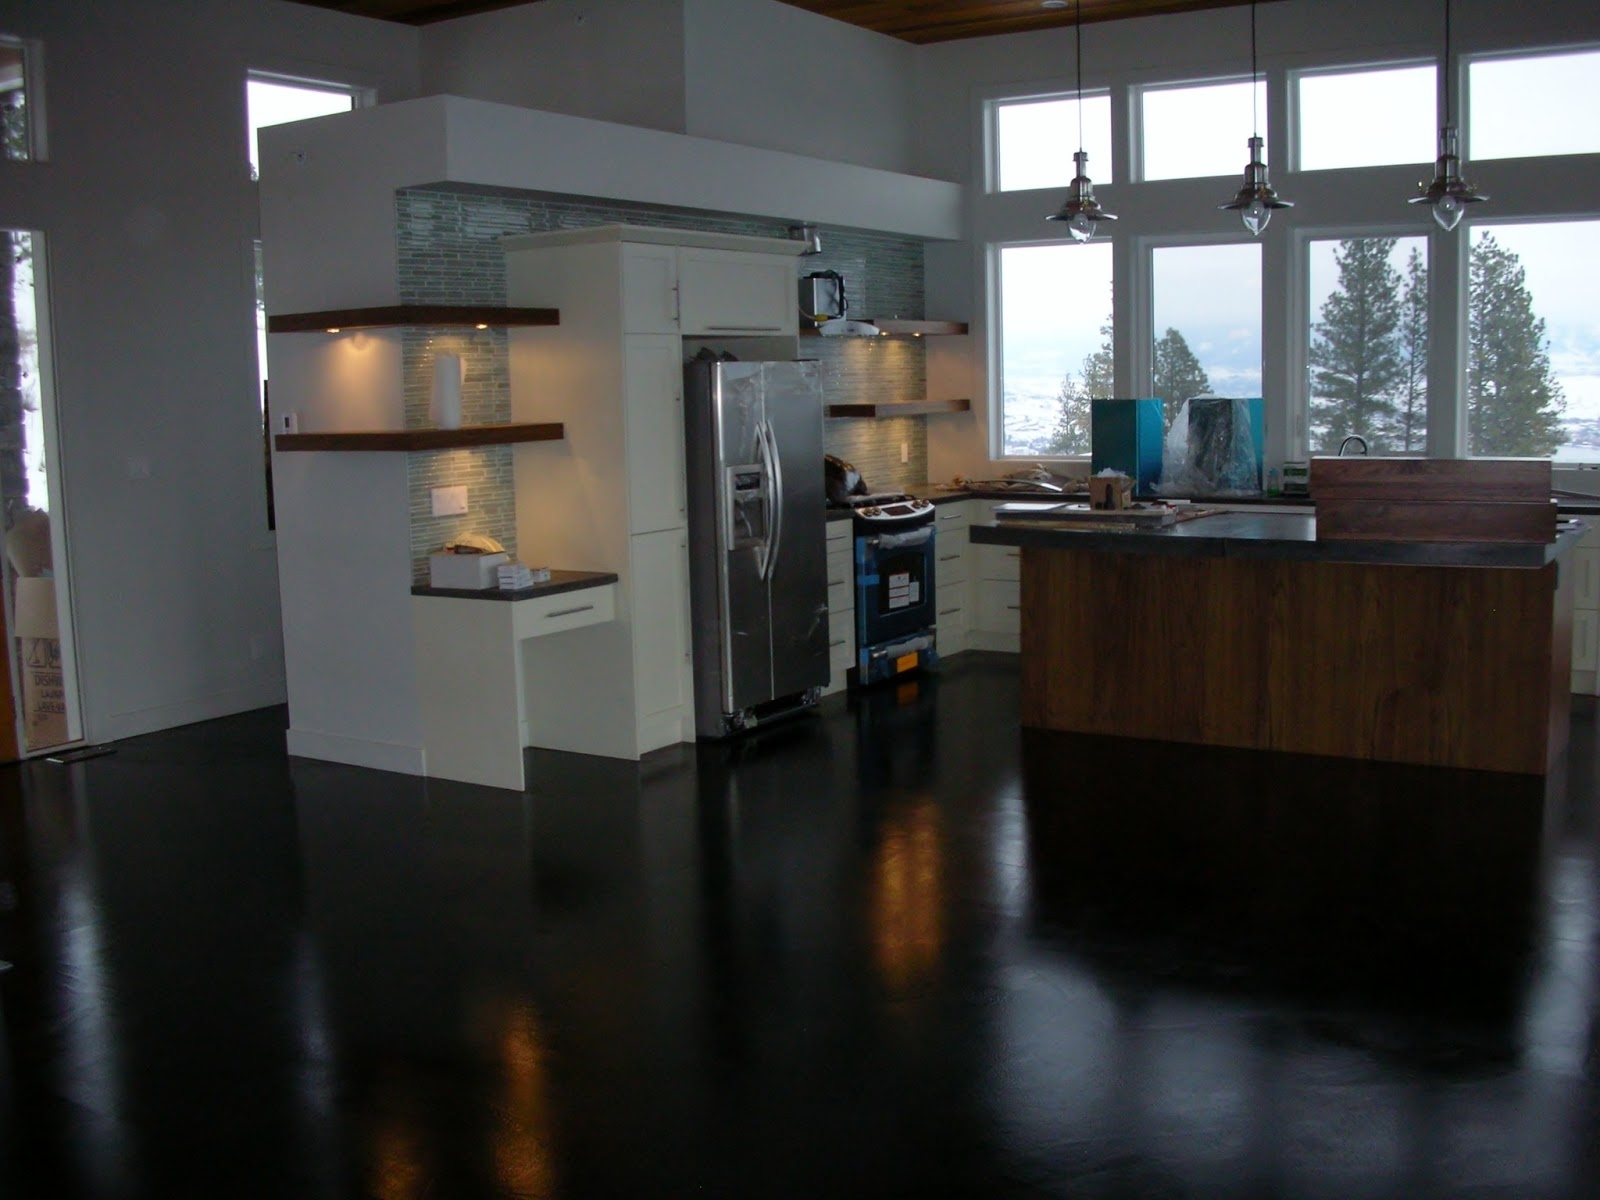 MODE CONCRETE: Considering Concrete Floors in the Kitchen